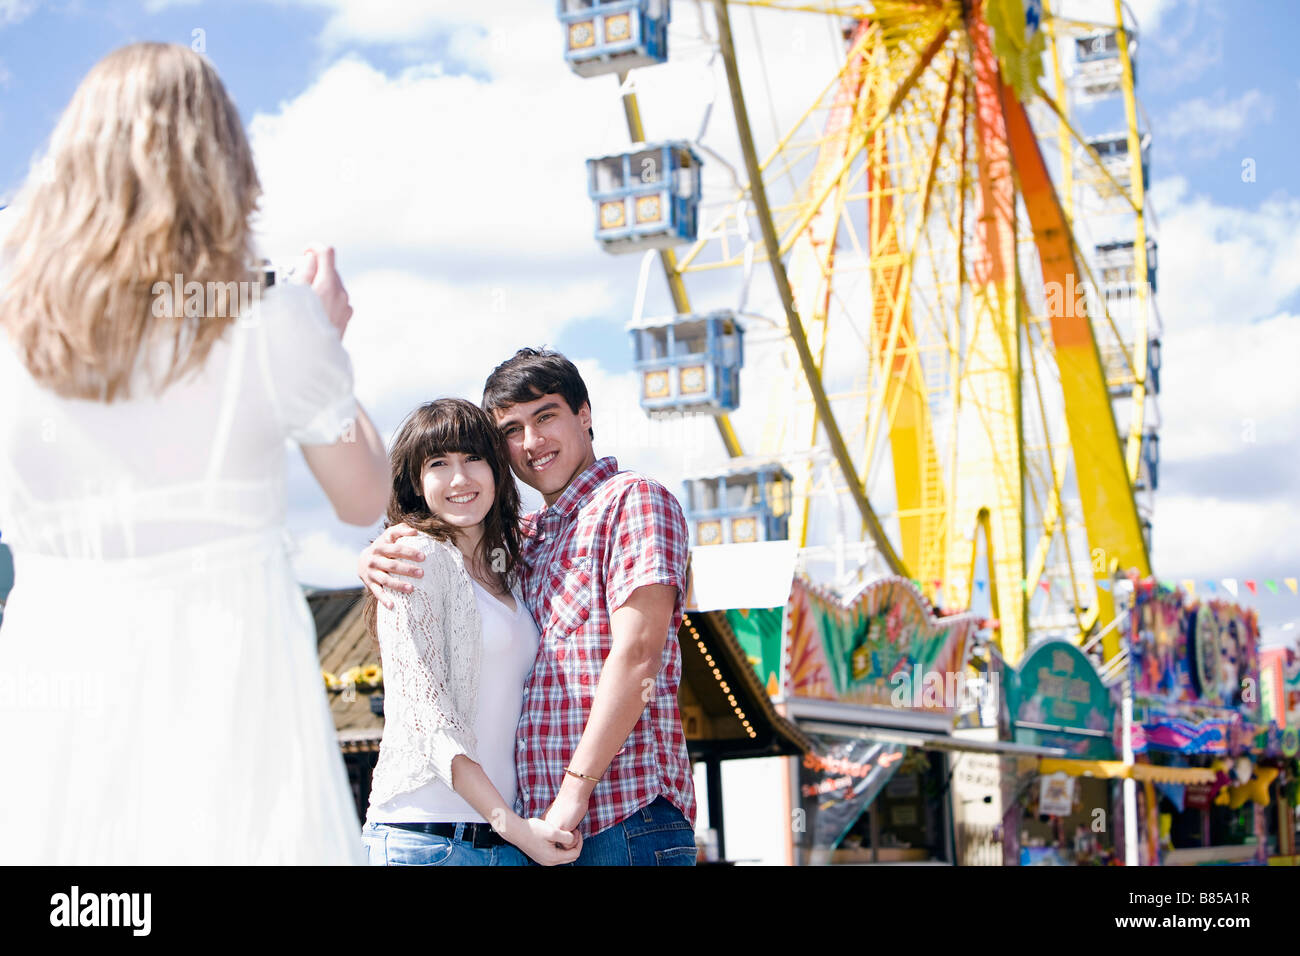 girl taking picture of teenage couple - Stock Image